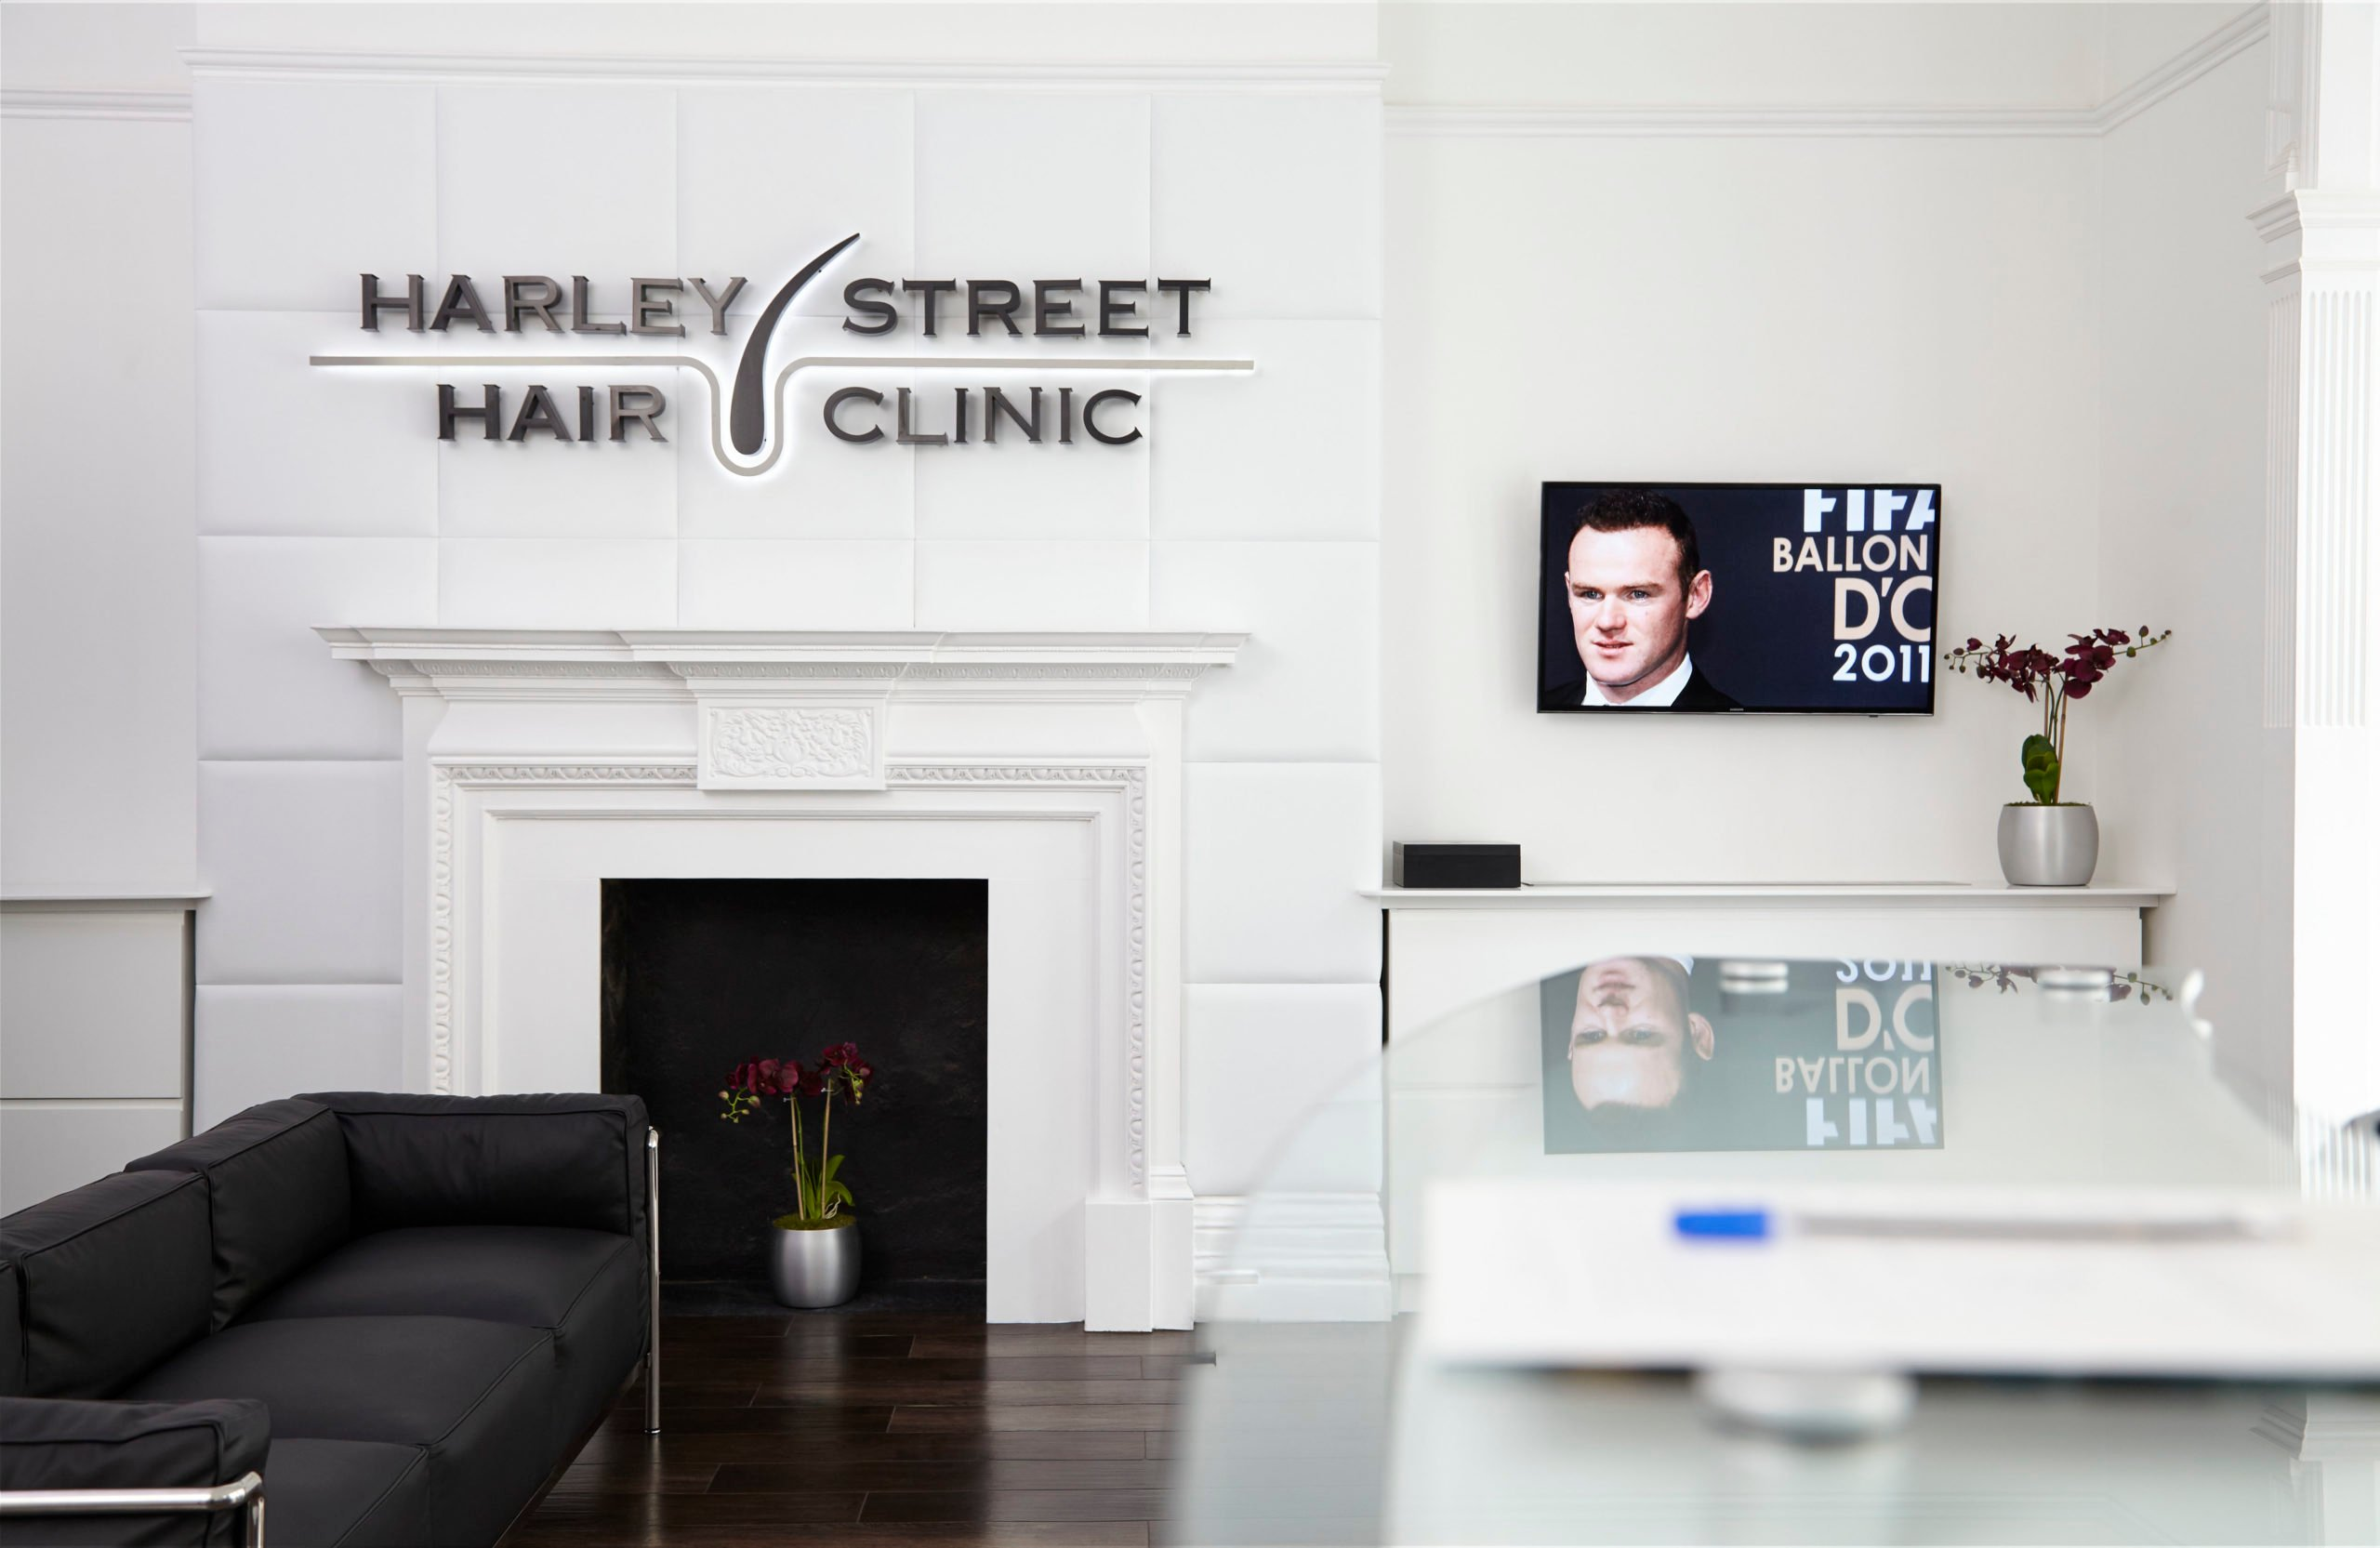 Harley Street Hair Clinic Reception